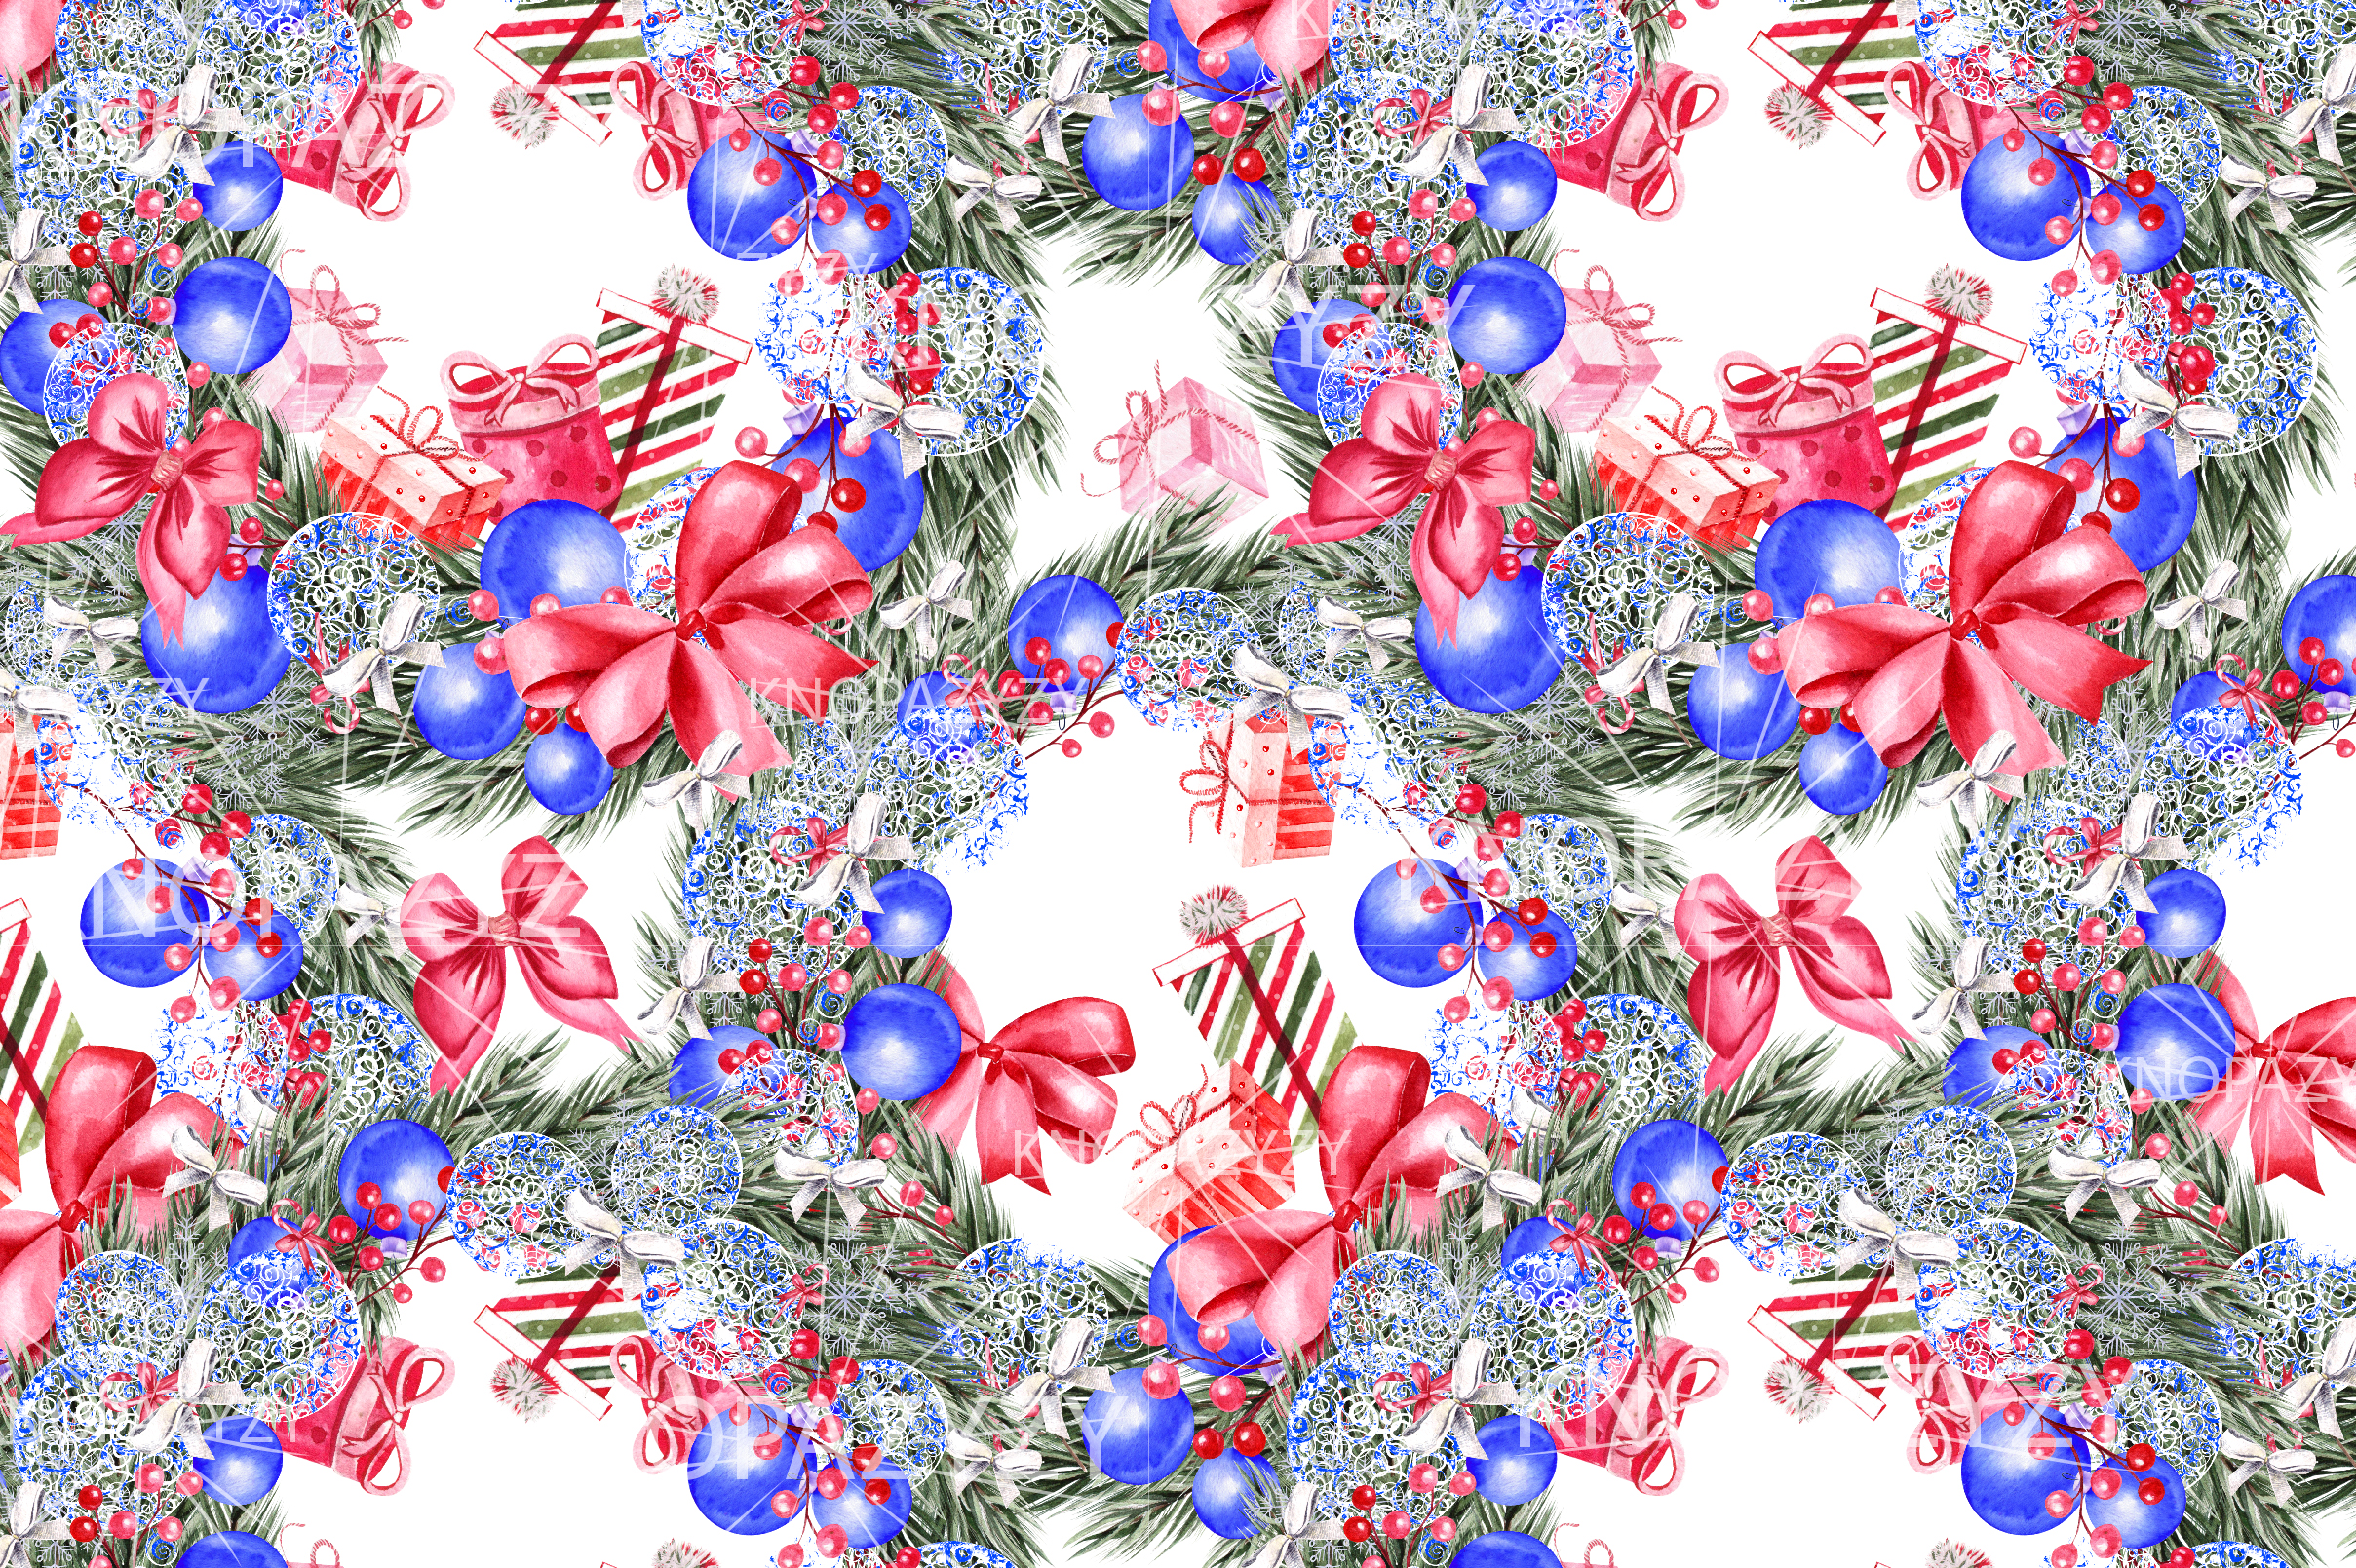 Hand Drawn Watercolor Christmas 13 Patterns example image 6